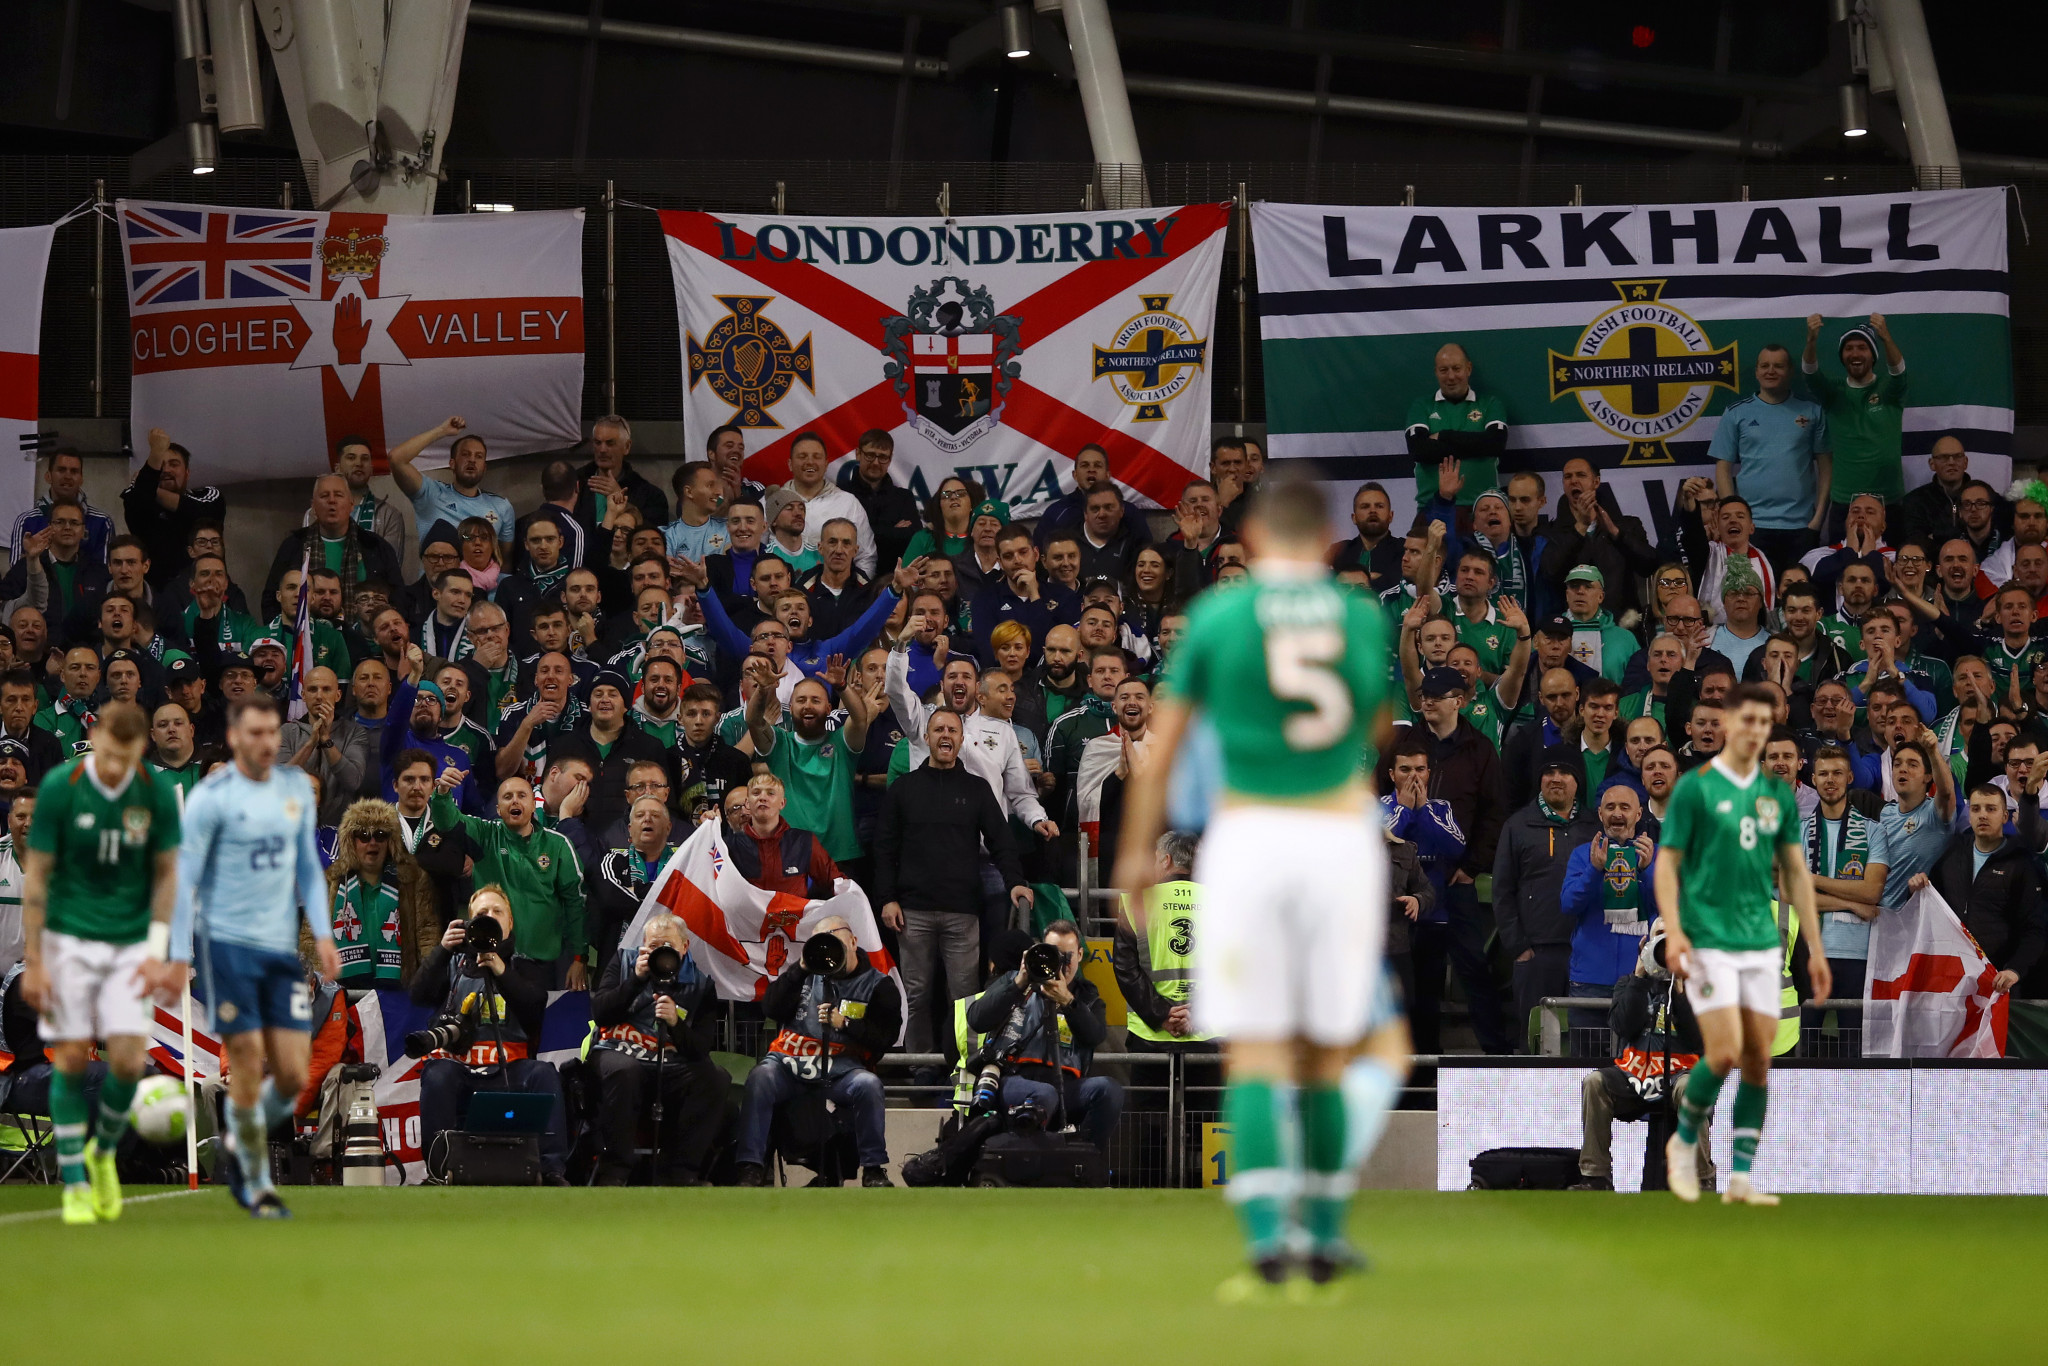 The Republic of Ireland and Northern Ireland last played in a friendly in November 2018, which ended goalless ©Getty Images